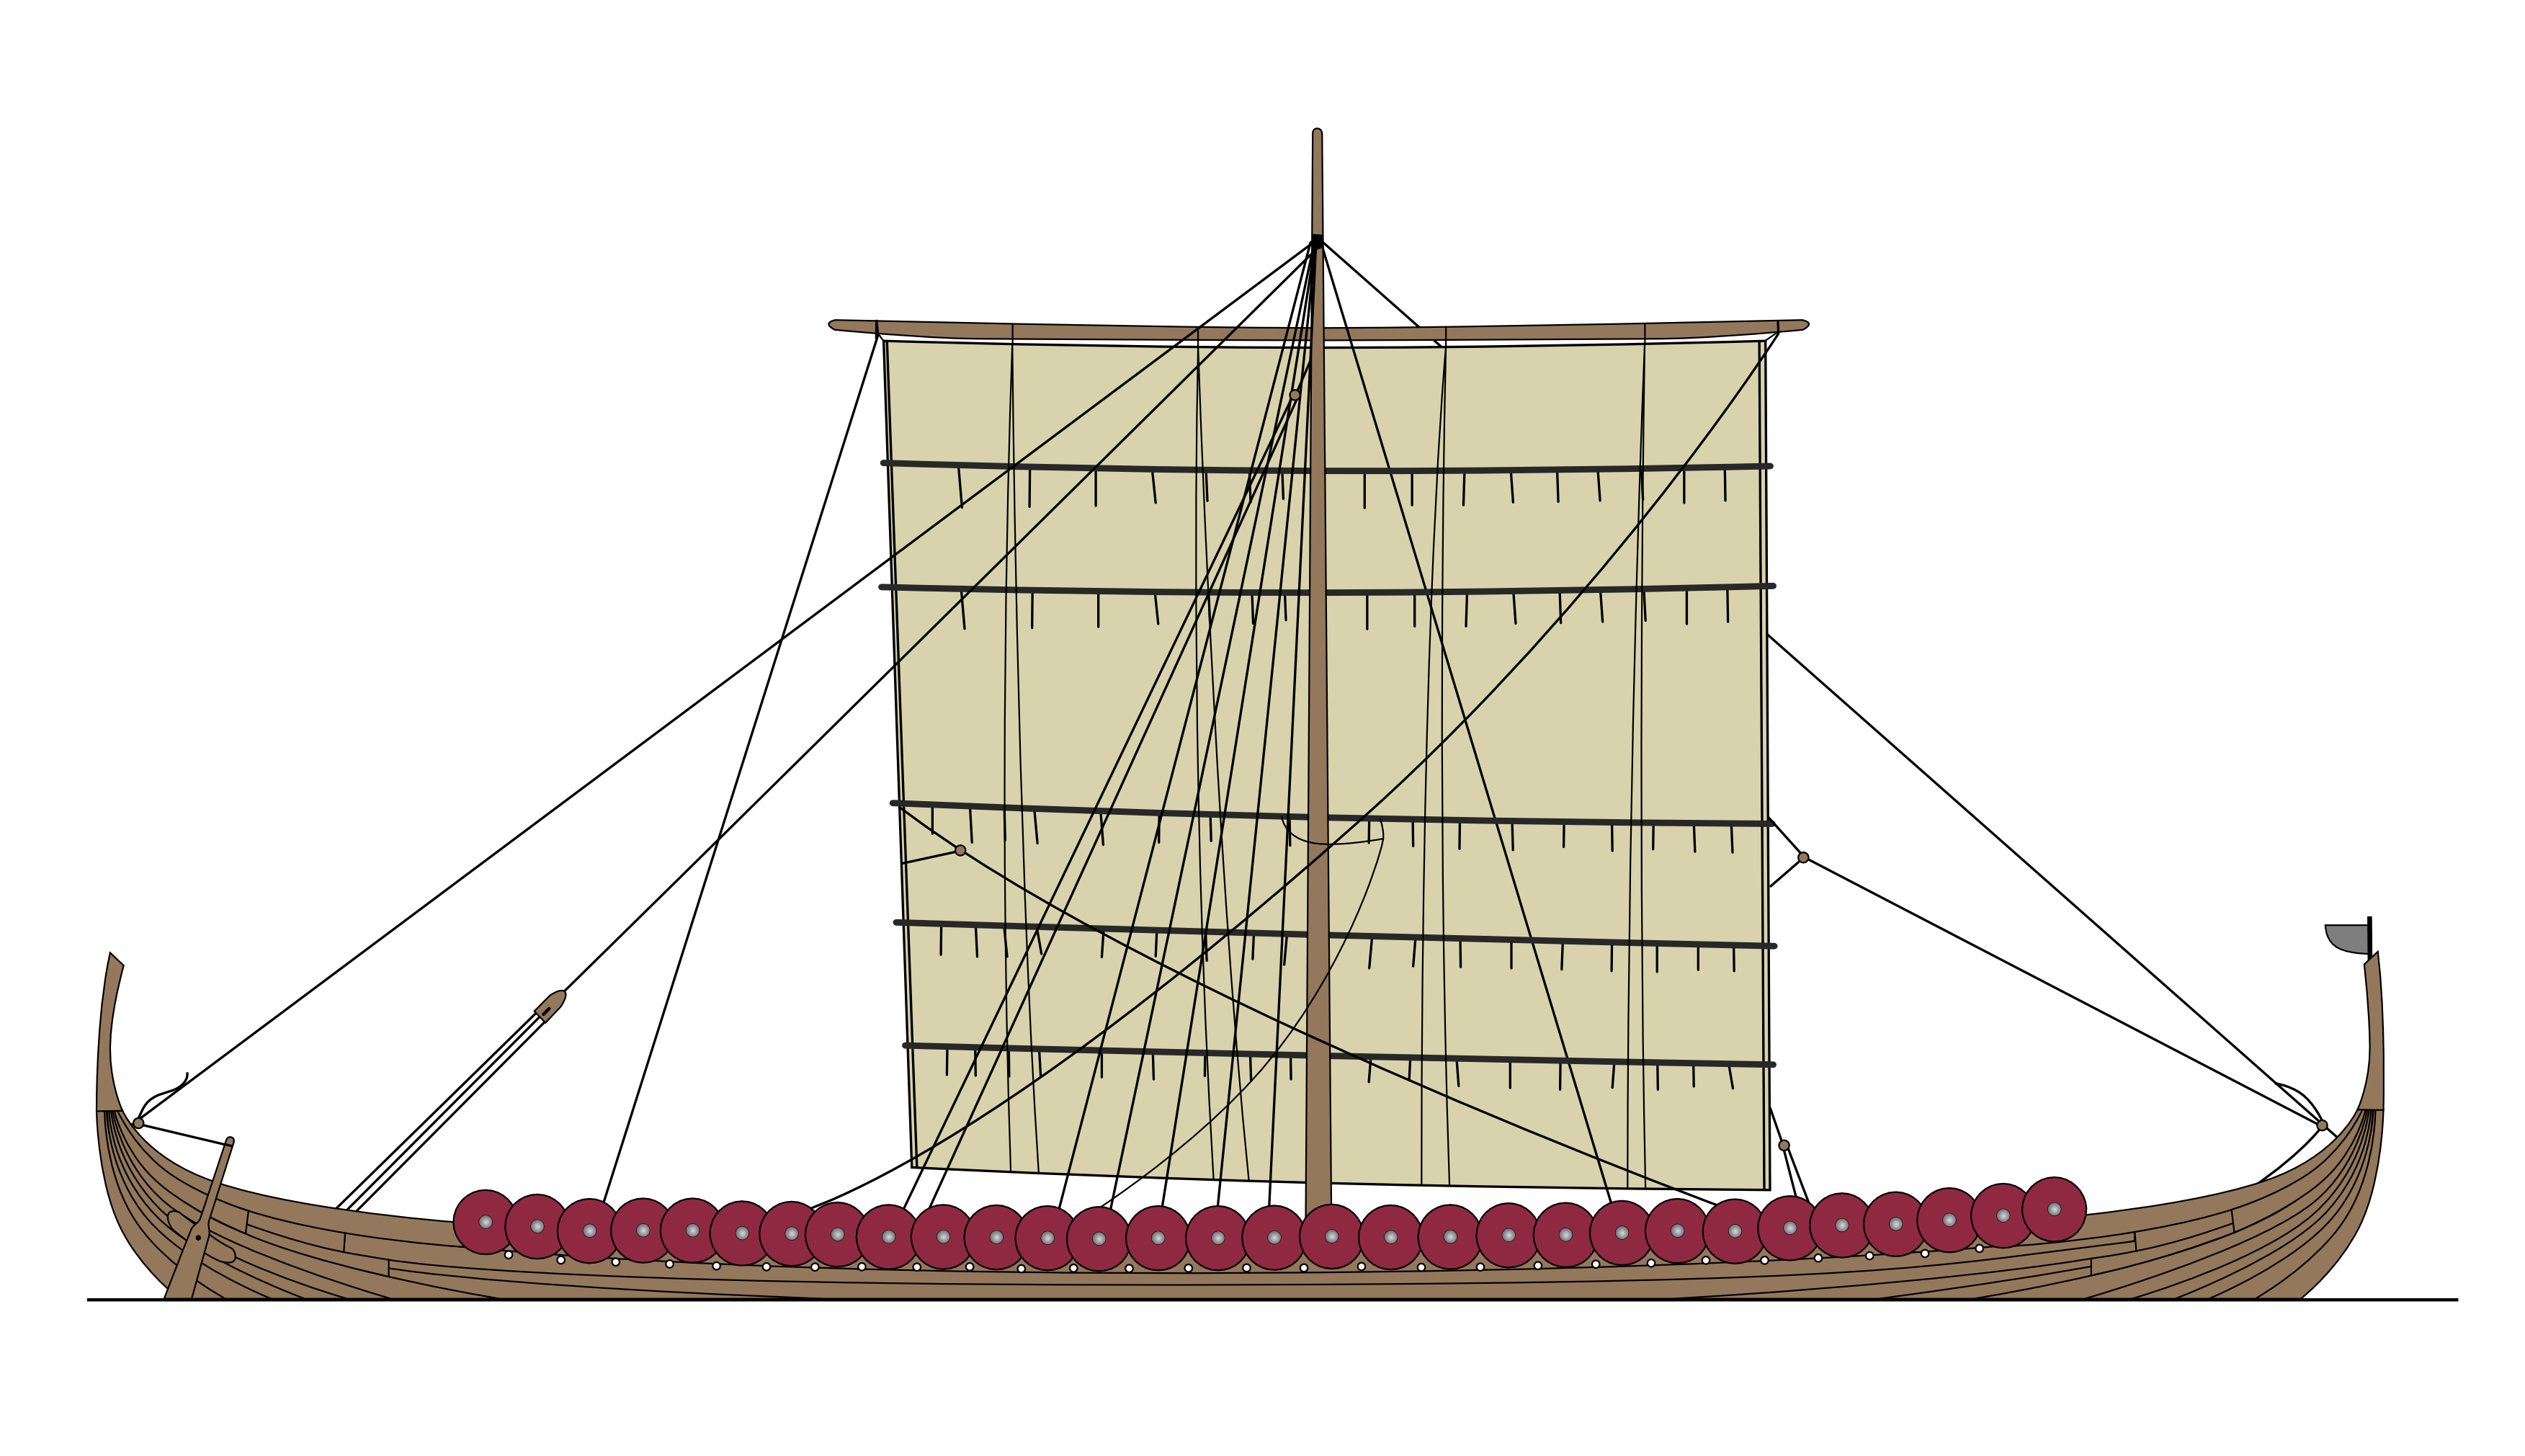 port drawing sea